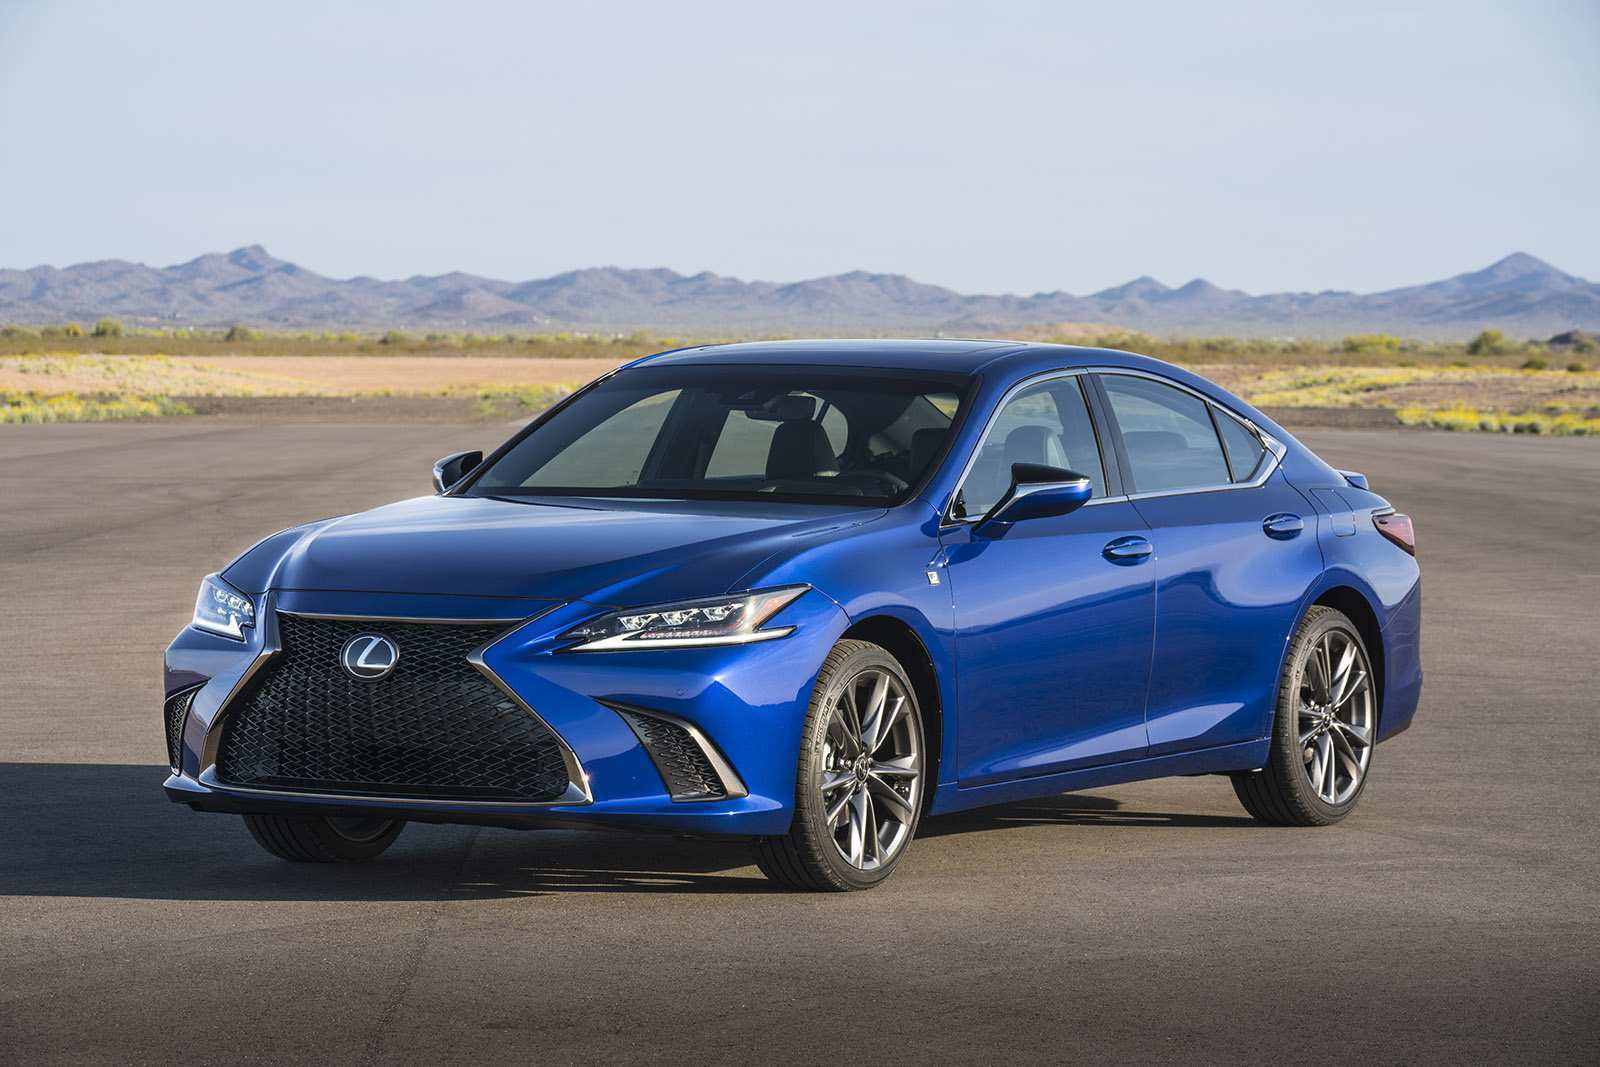 71 All New 2019 Lexus Es 350 F Sport Photos with 2019 Lexus Es 350 F Sport